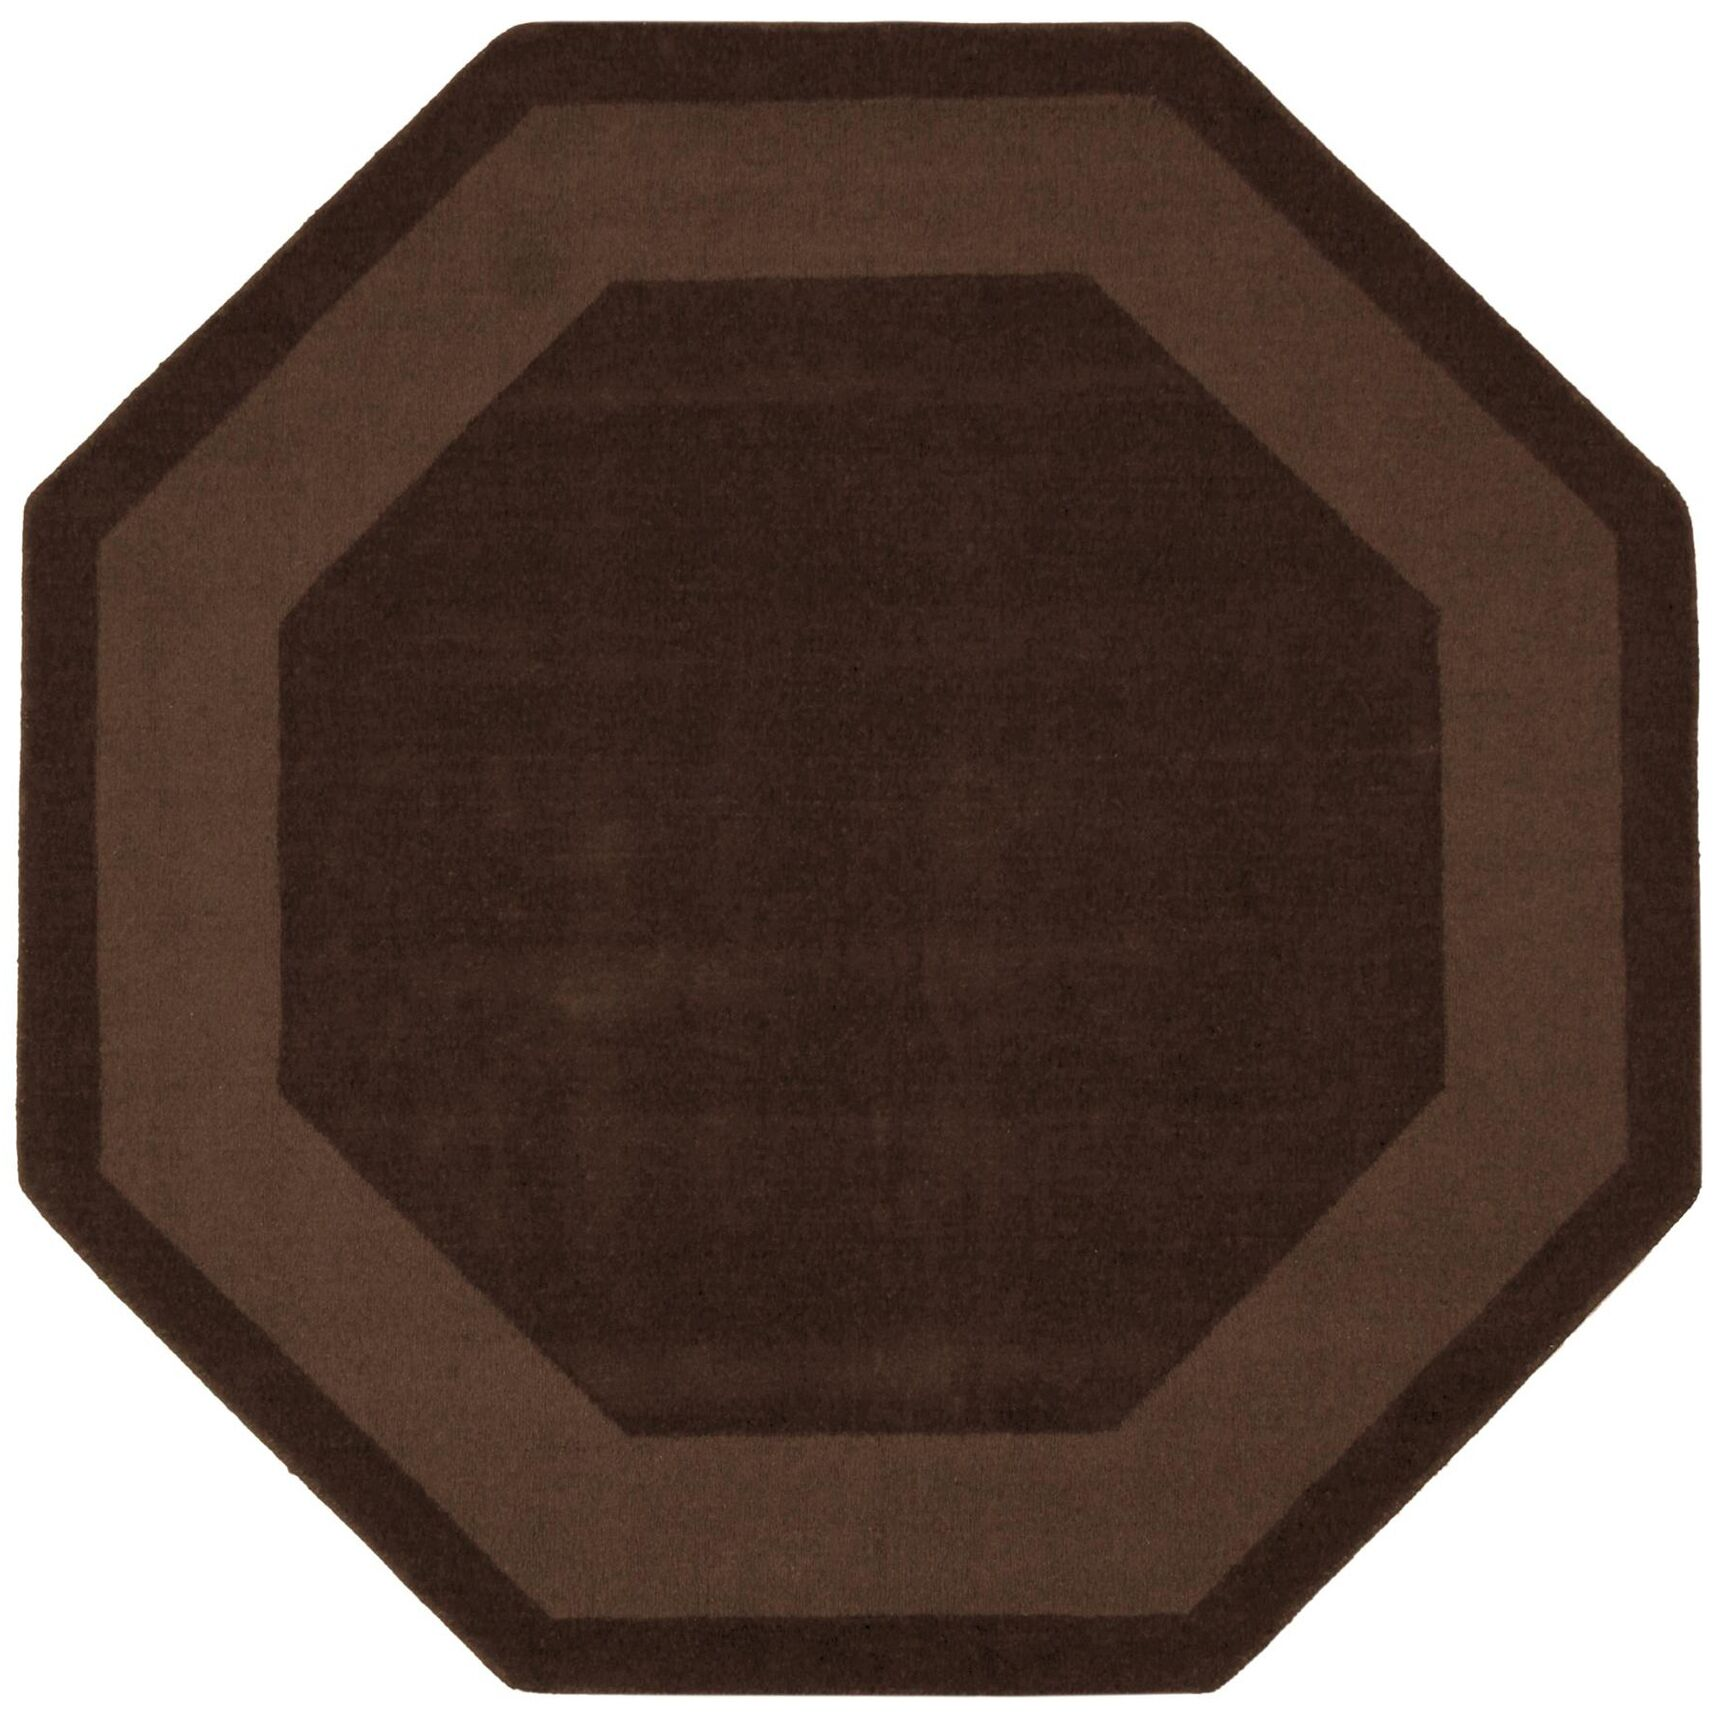 Transitions Chocolate Border Rug Rug Size: Octagon 6'